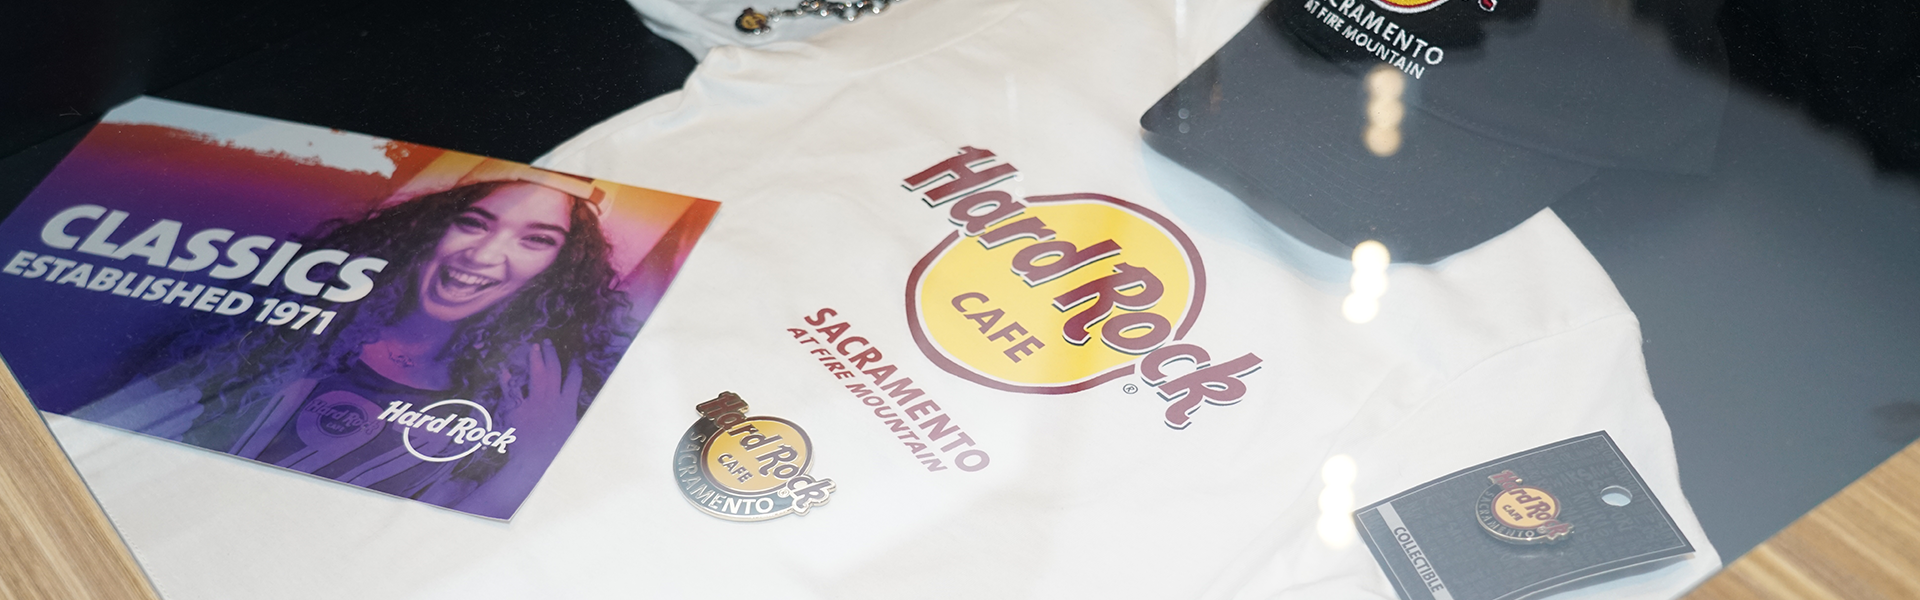 The famous Hard Rock Cafe t-shirt that started it all, available at Hard Rock Sacramento